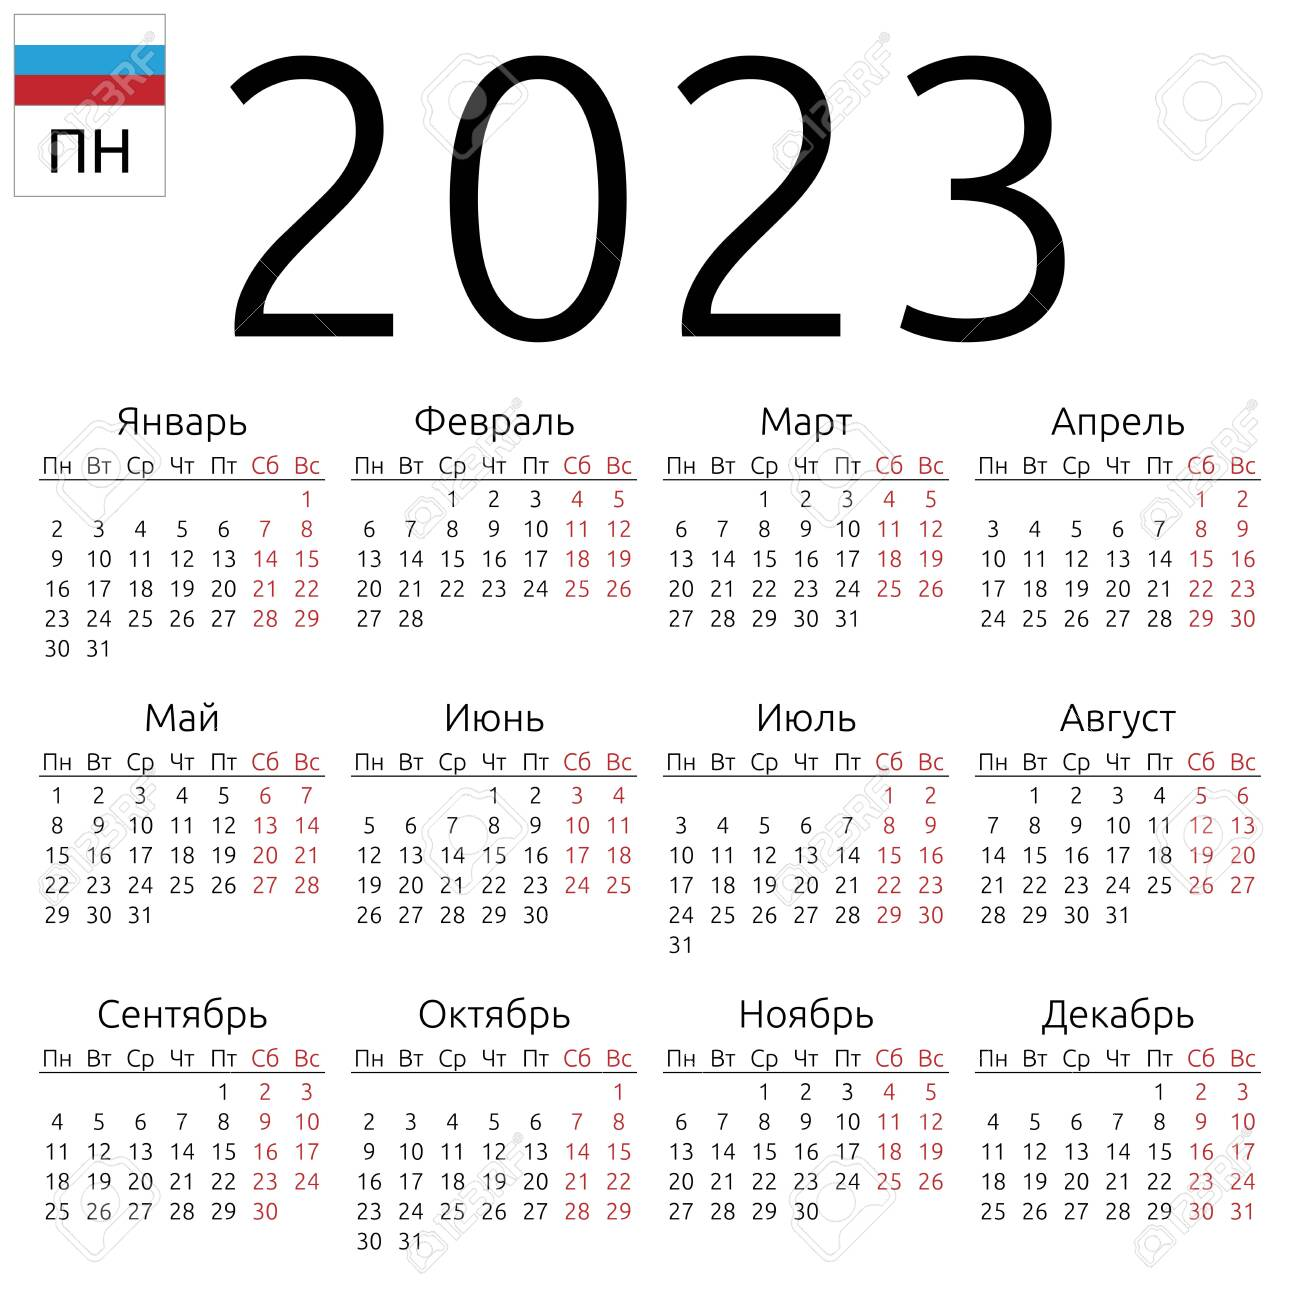 2023 2022 Calendar.Simple Annual 2023 Year Wall Calendar Russian Language Week Royalty Free Cliparts Vectors And Stock Illustration Image 135890474